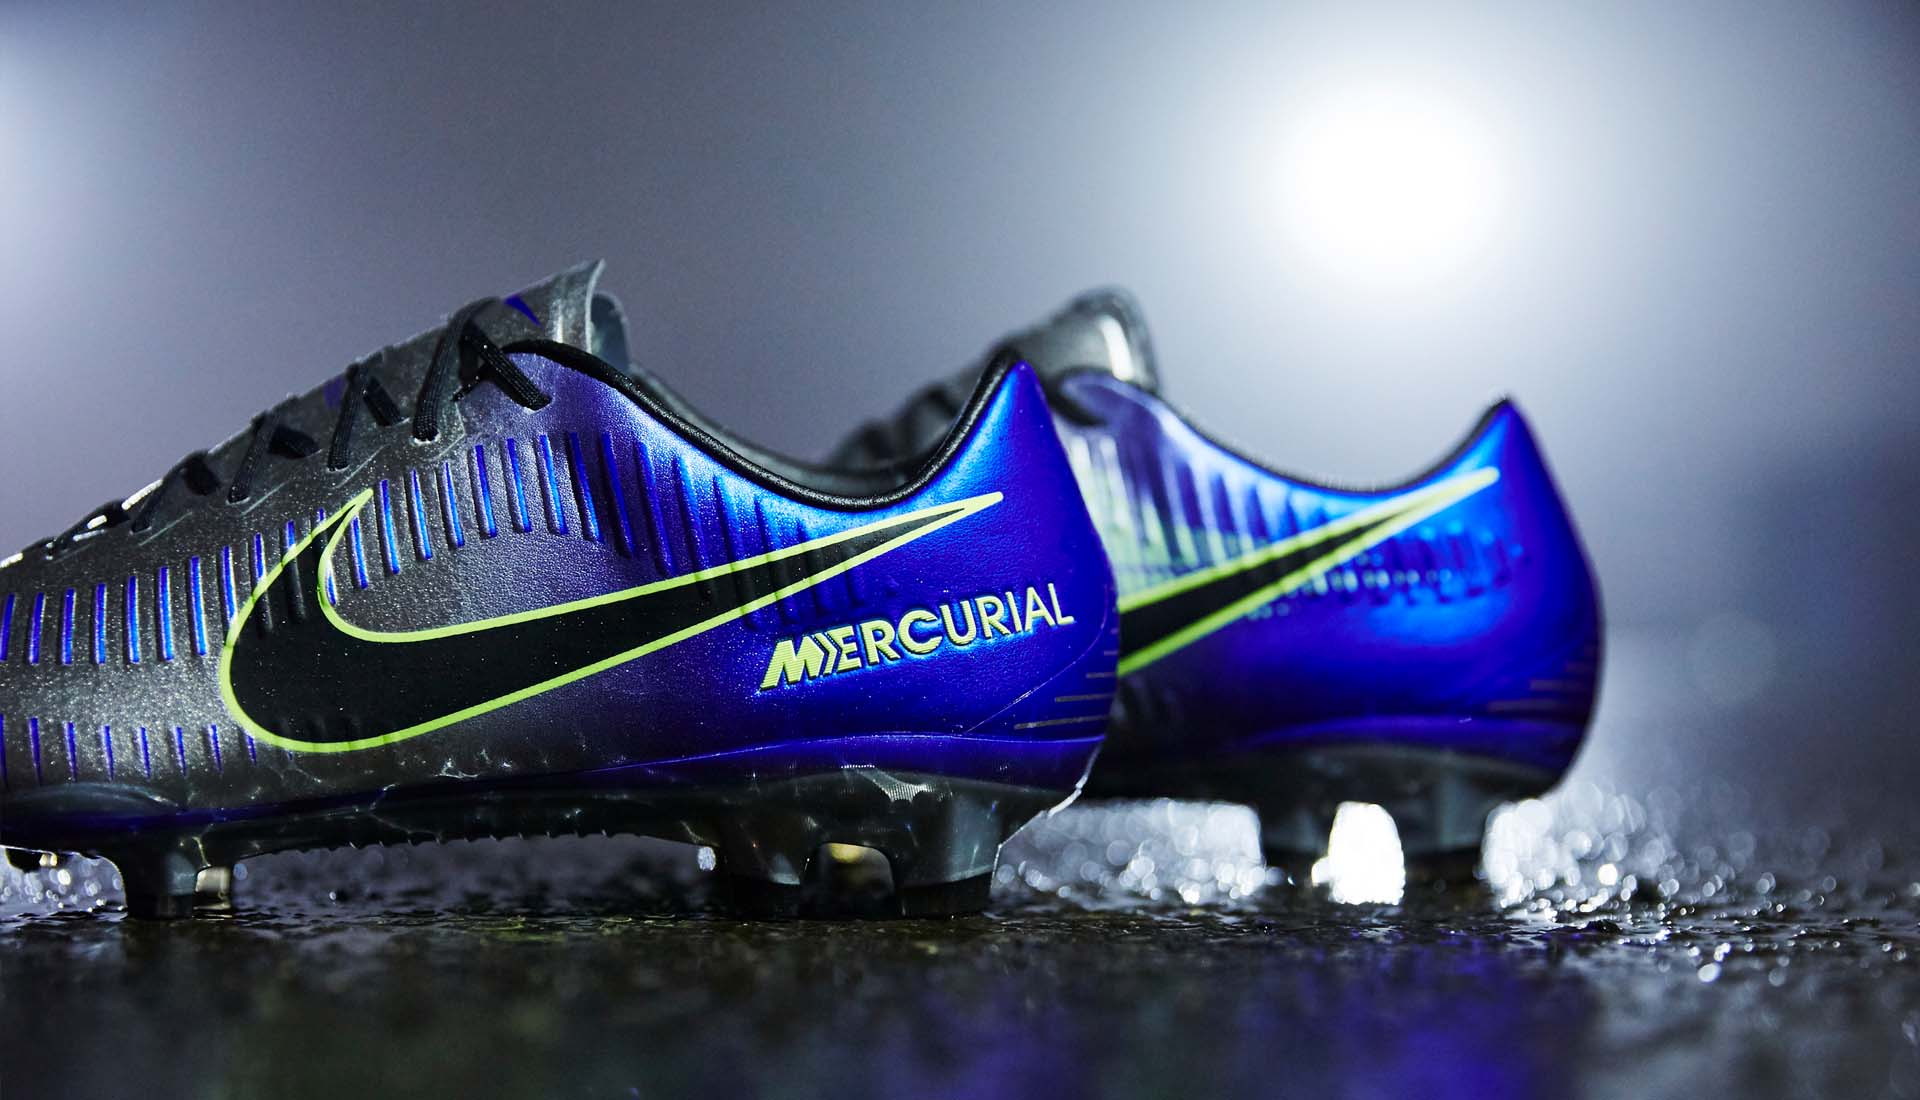 c10576e6115 Nike Launch the Mercurial Puro Fenomeno - SoccerBible